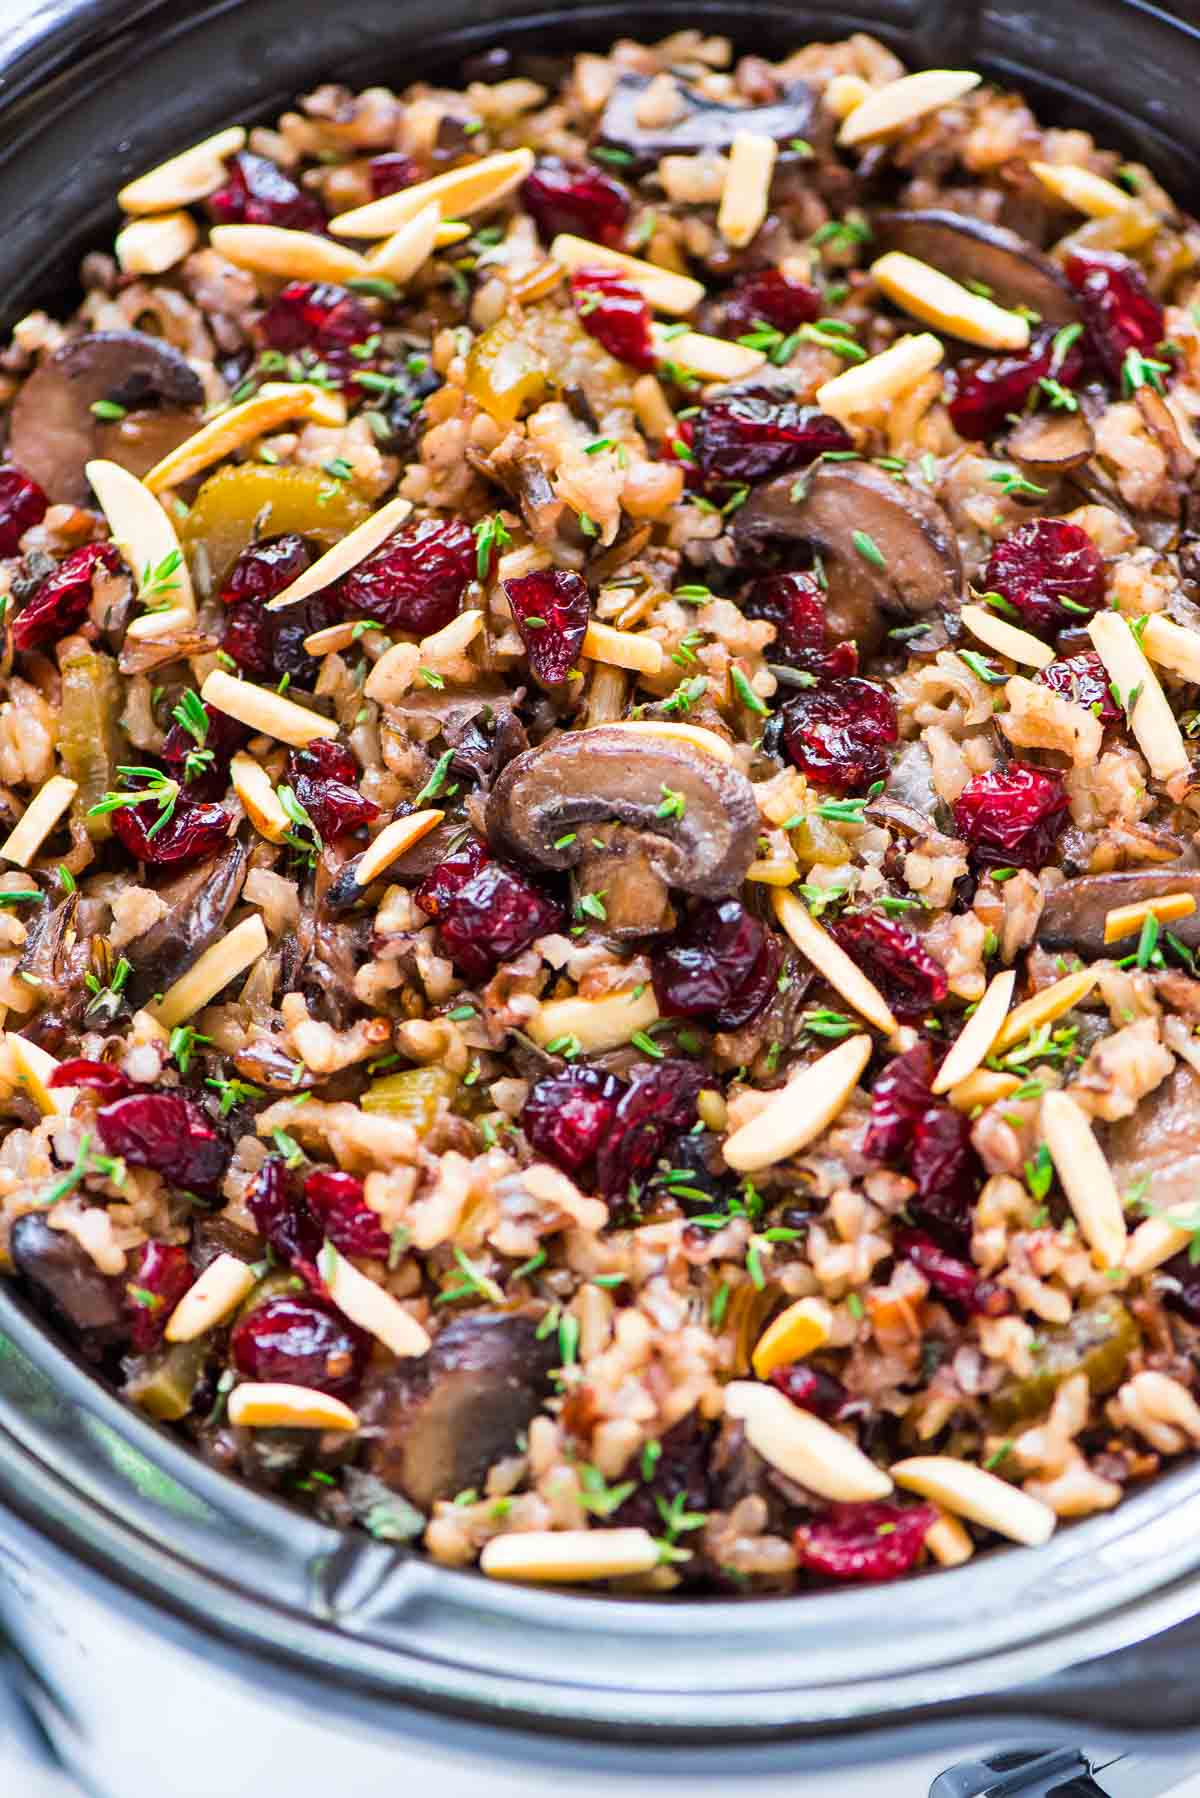 Free up the oven for Thanksgiving with this Crockpot Stuffing with Wild Rice and Cranberries. An easy, DELICIOUS gluten free stuffing recipe that everyone can enjoy! Simple, cozy slow cooker recipe that's perfect for holidays or anytime you are hosting a crowd. Recipe at wellplated.com   @wellplated {vegan, gluten free}